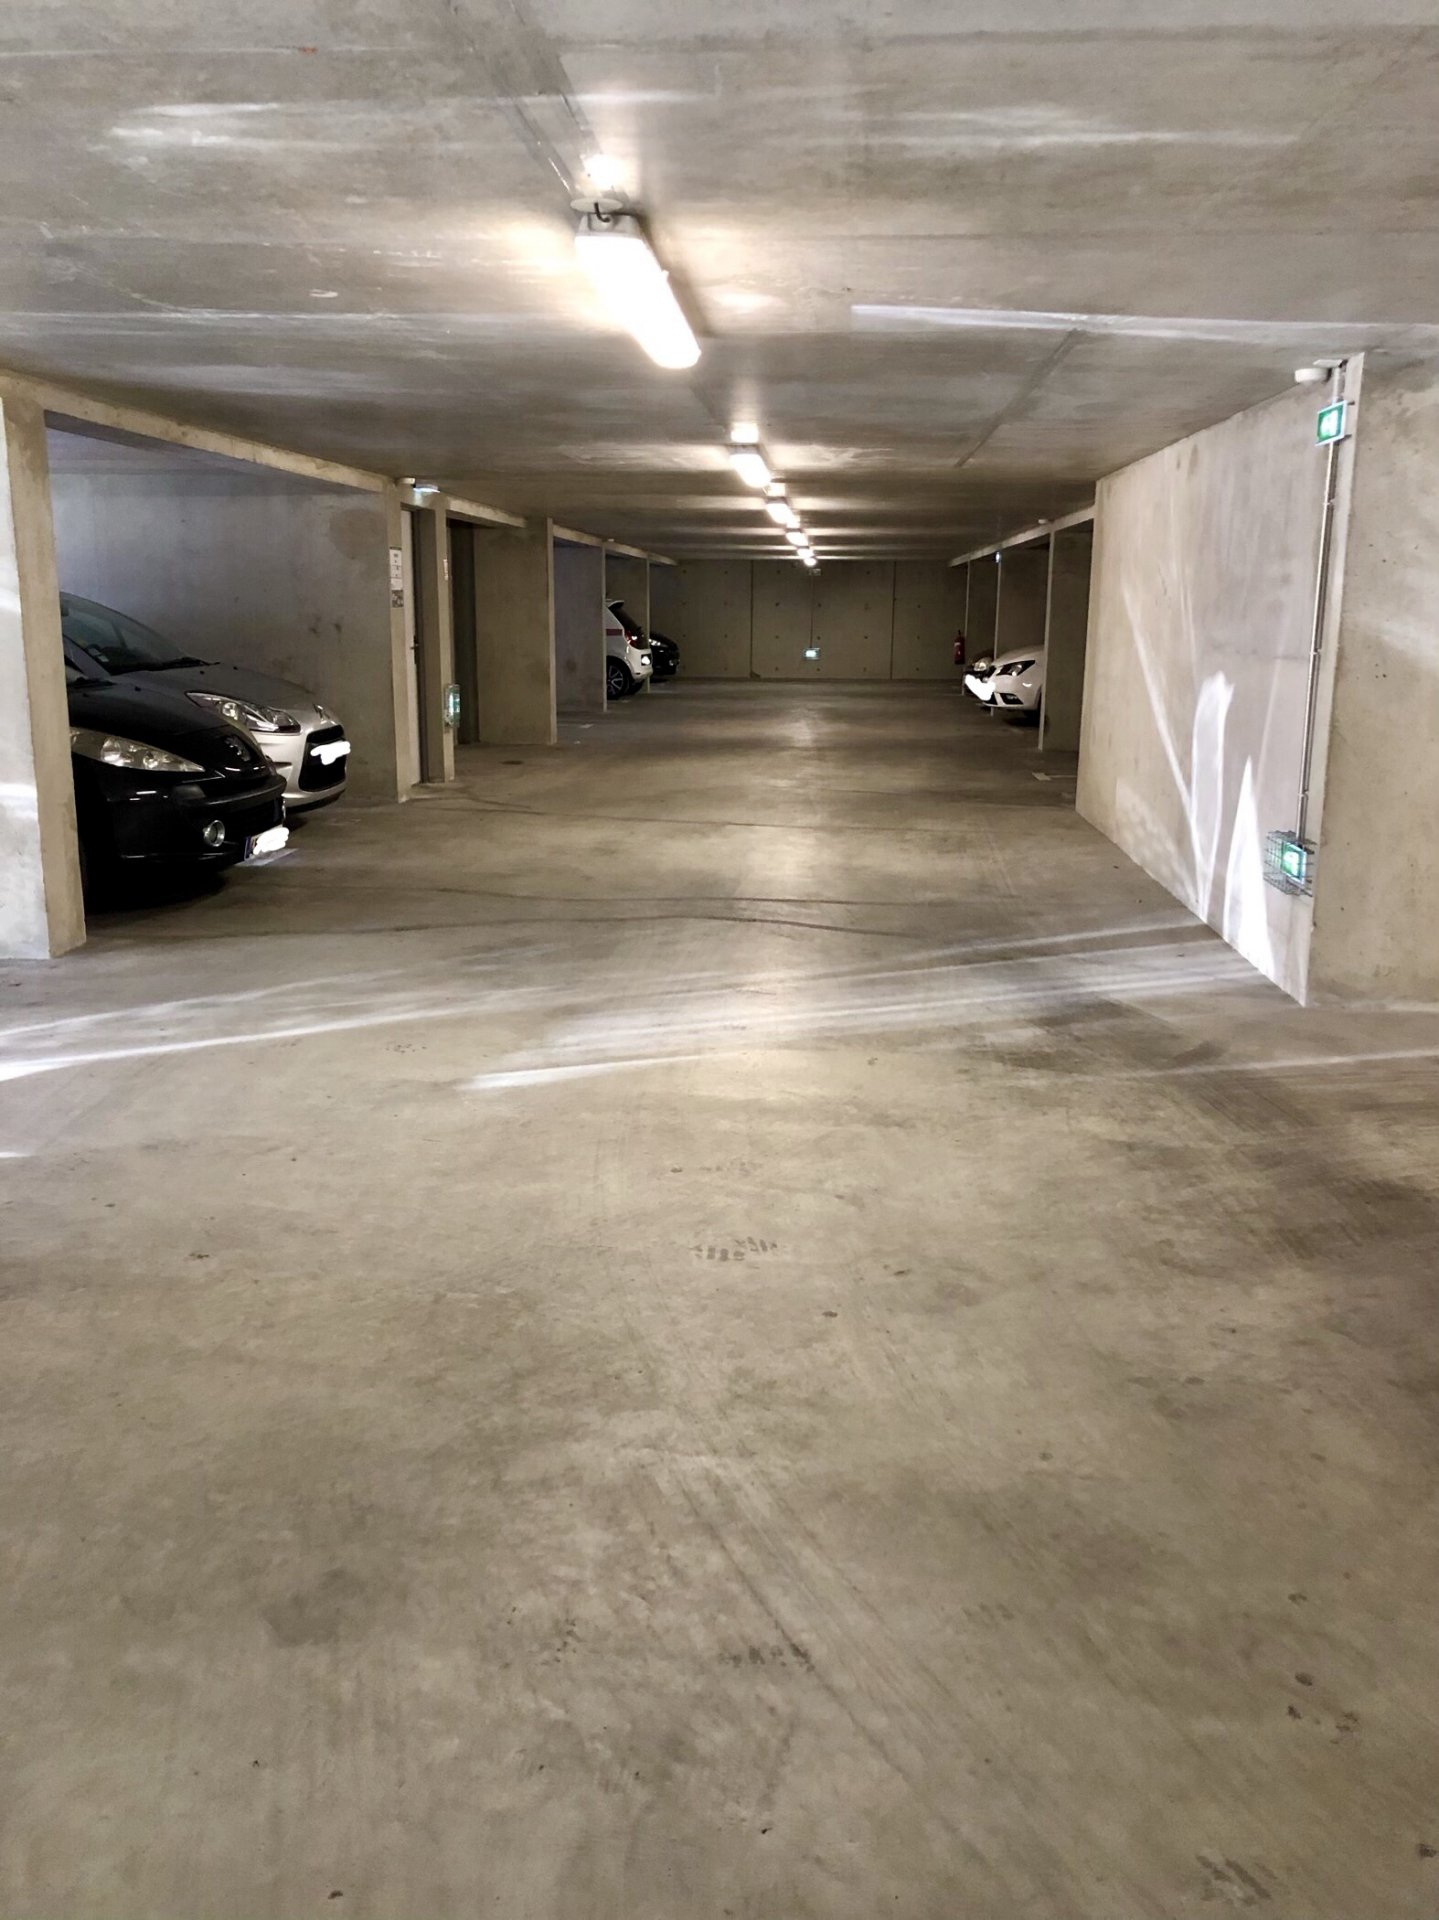 GRENOBLE, Place de parking Secteur Condorcet Thiers